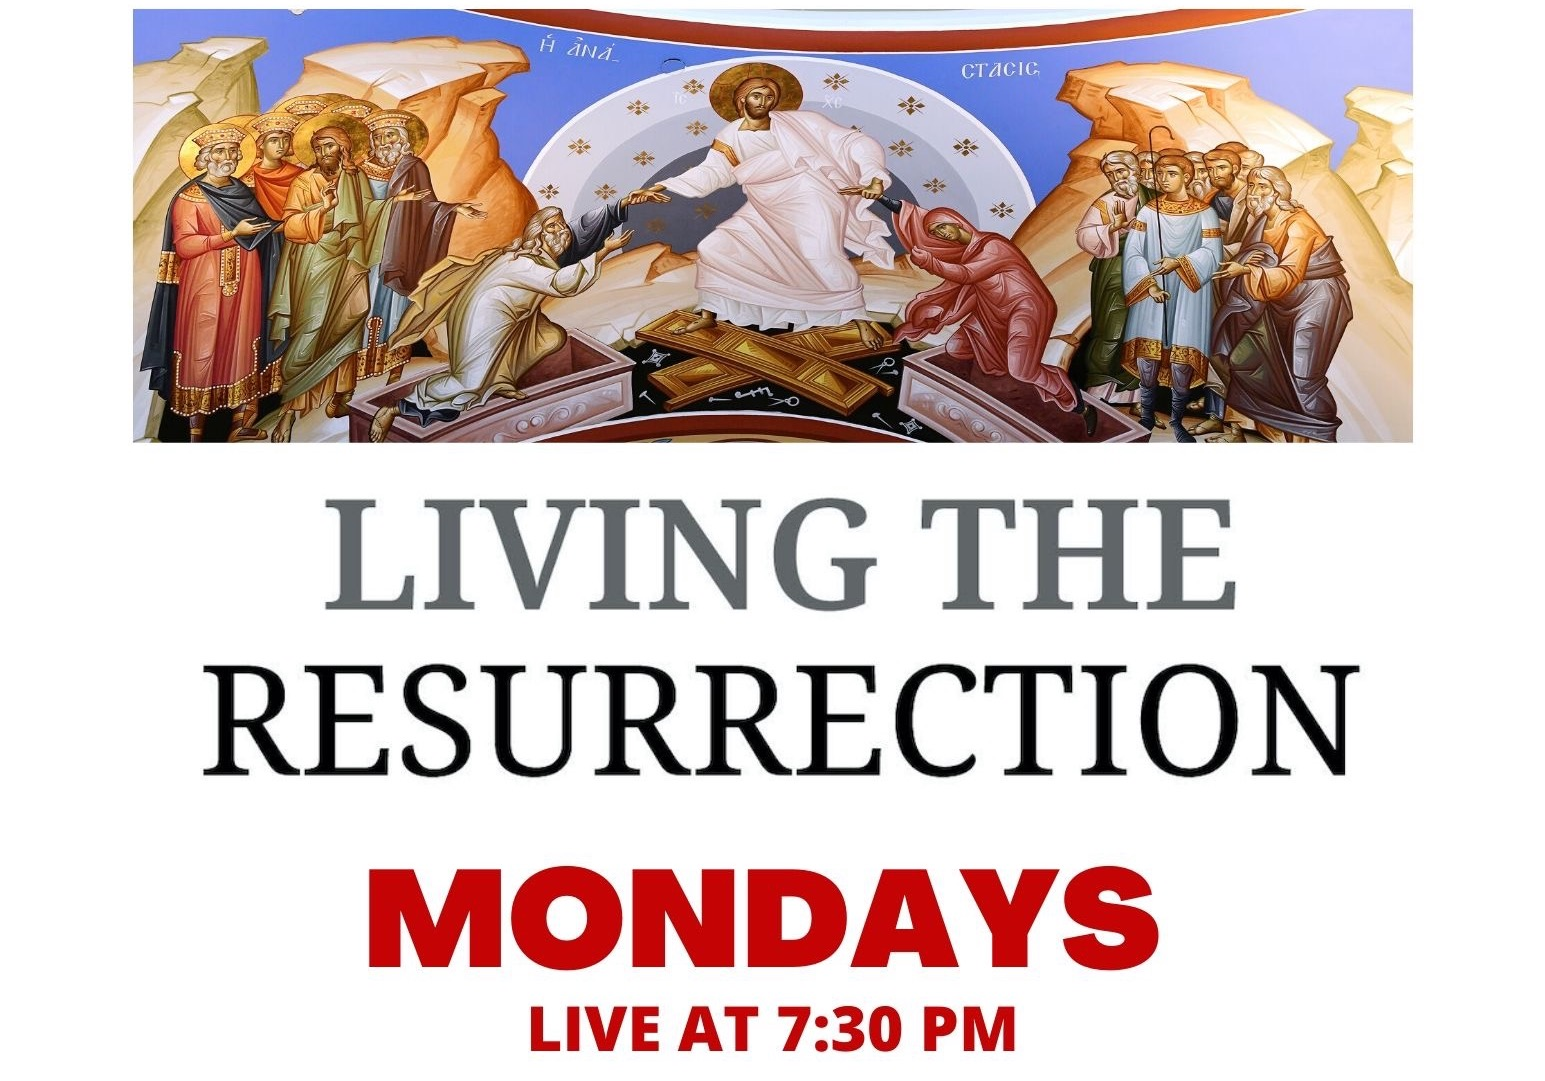 Living the Resurrection : Learn more about your faith! We are currently studying the Divine Liturgy.